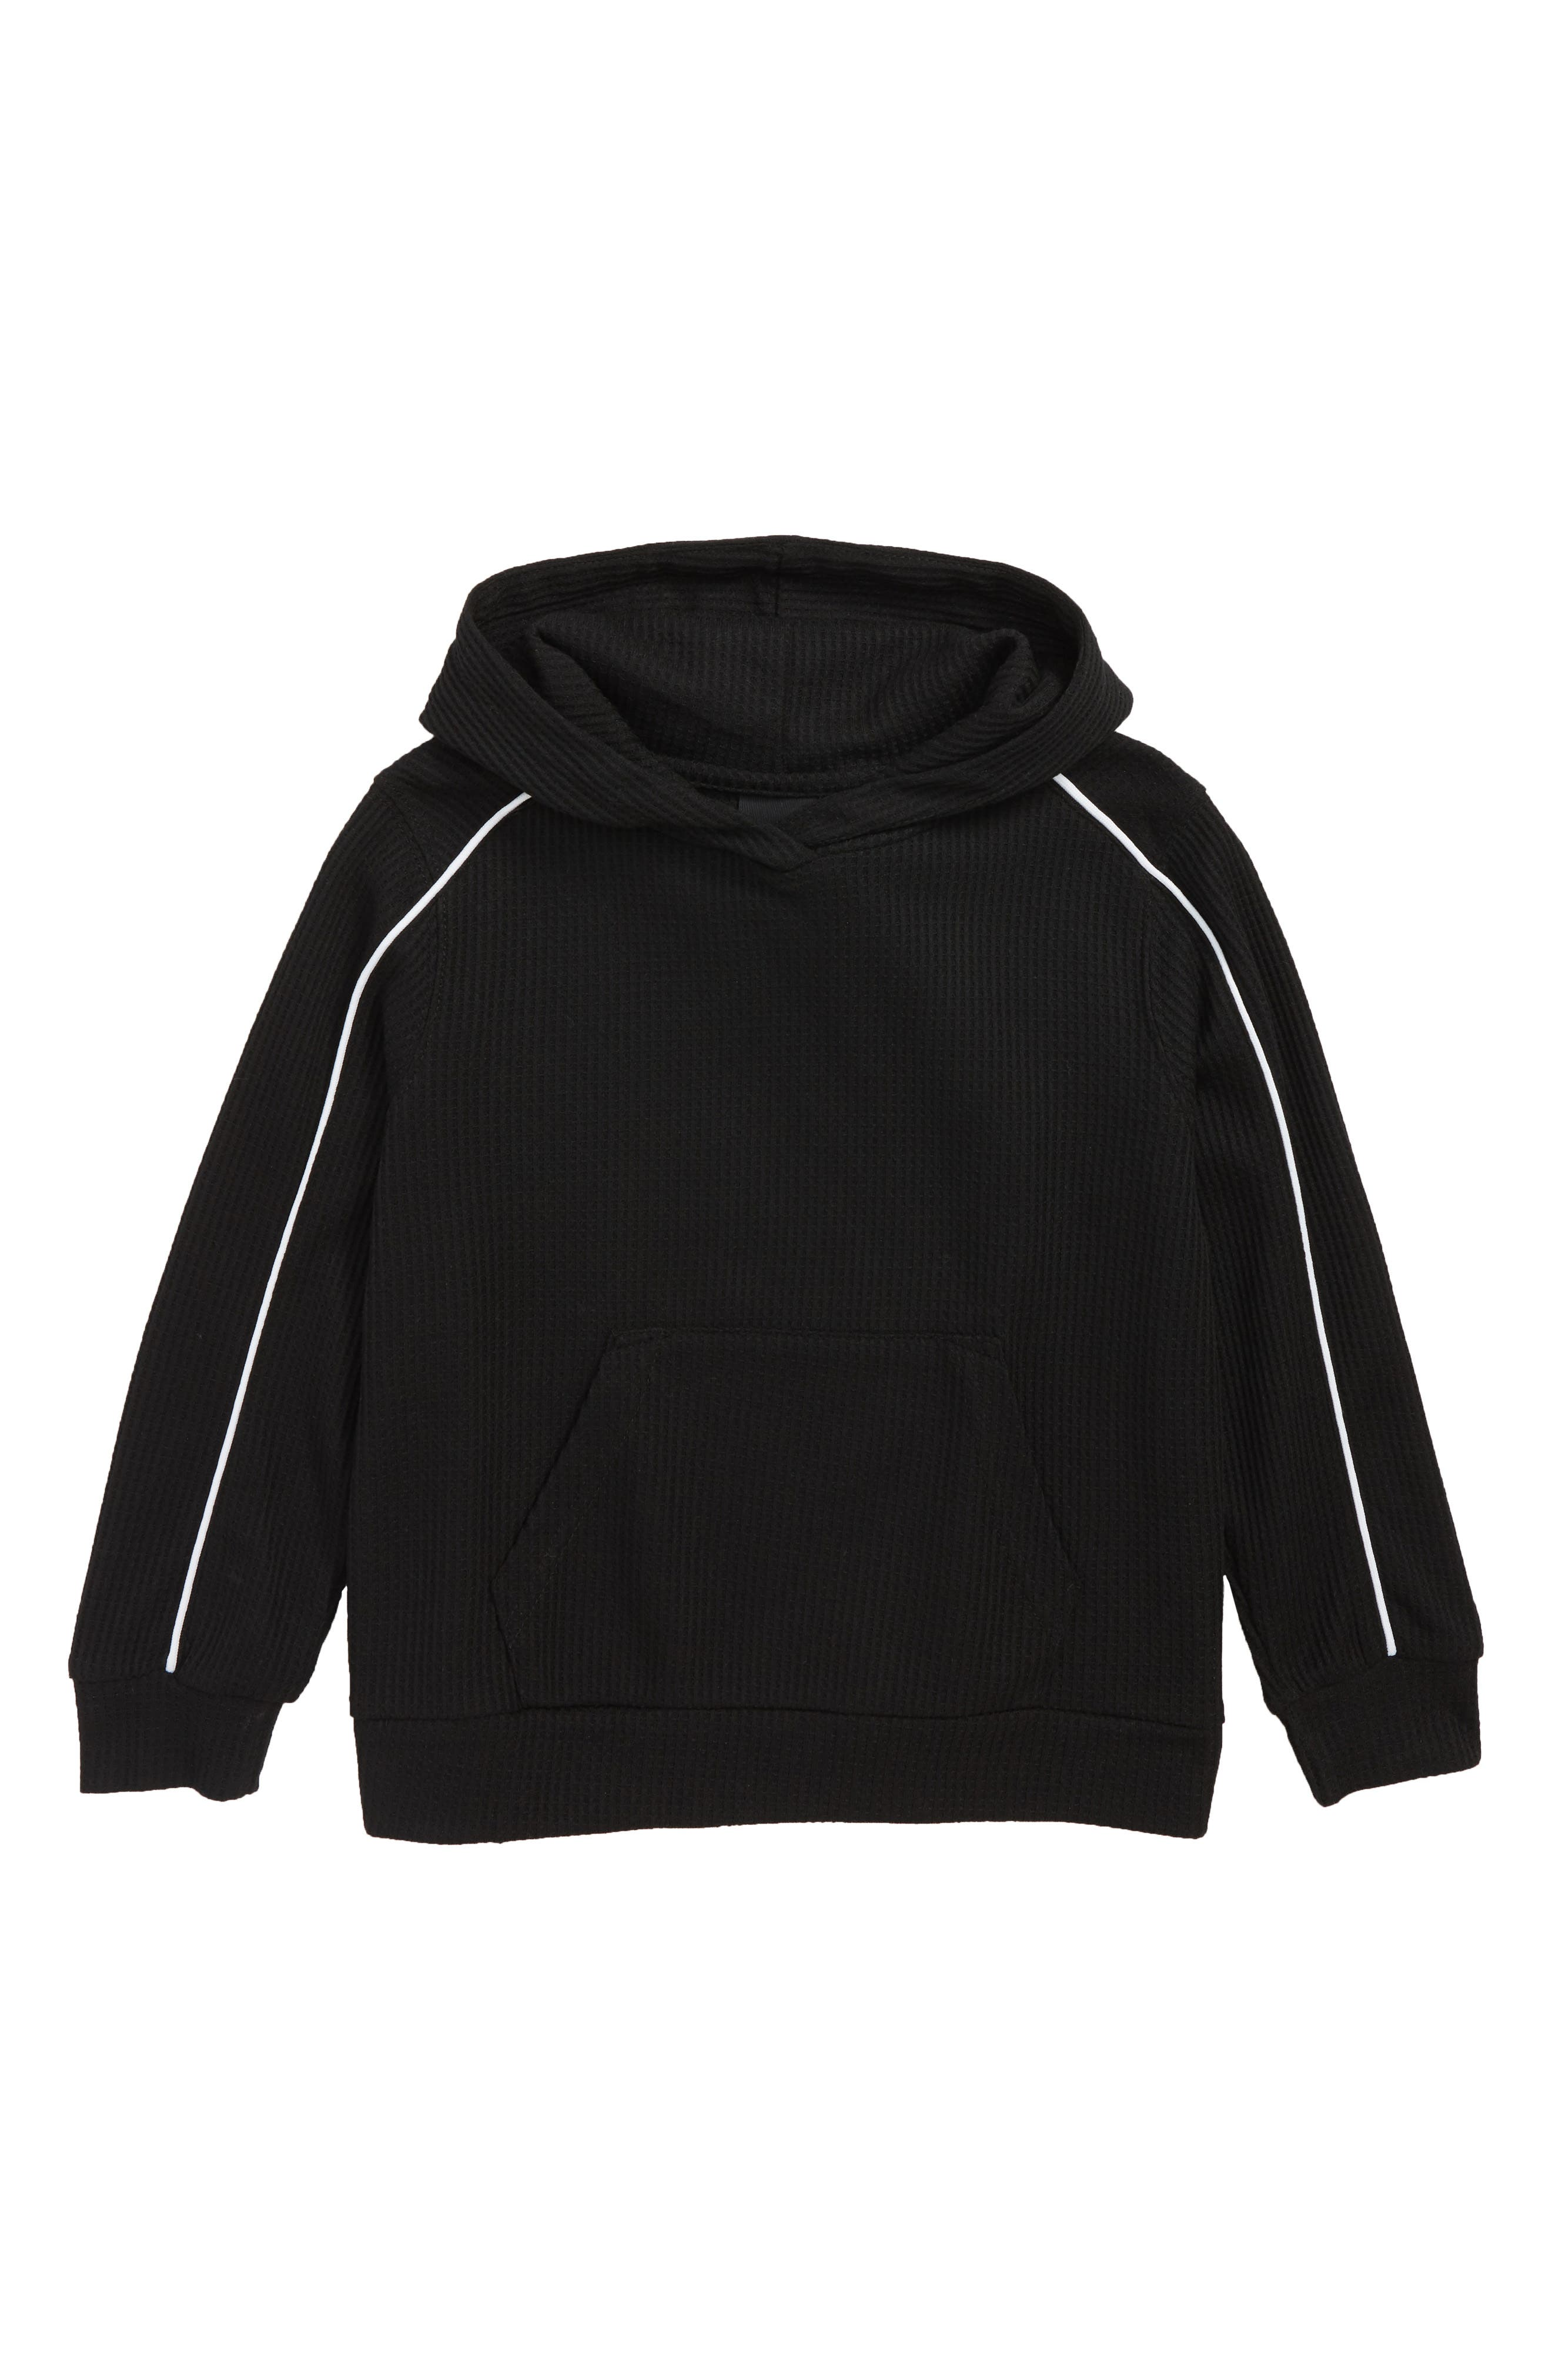 Drago Hooded Pullover,                             Main thumbnail 1, color,                             001